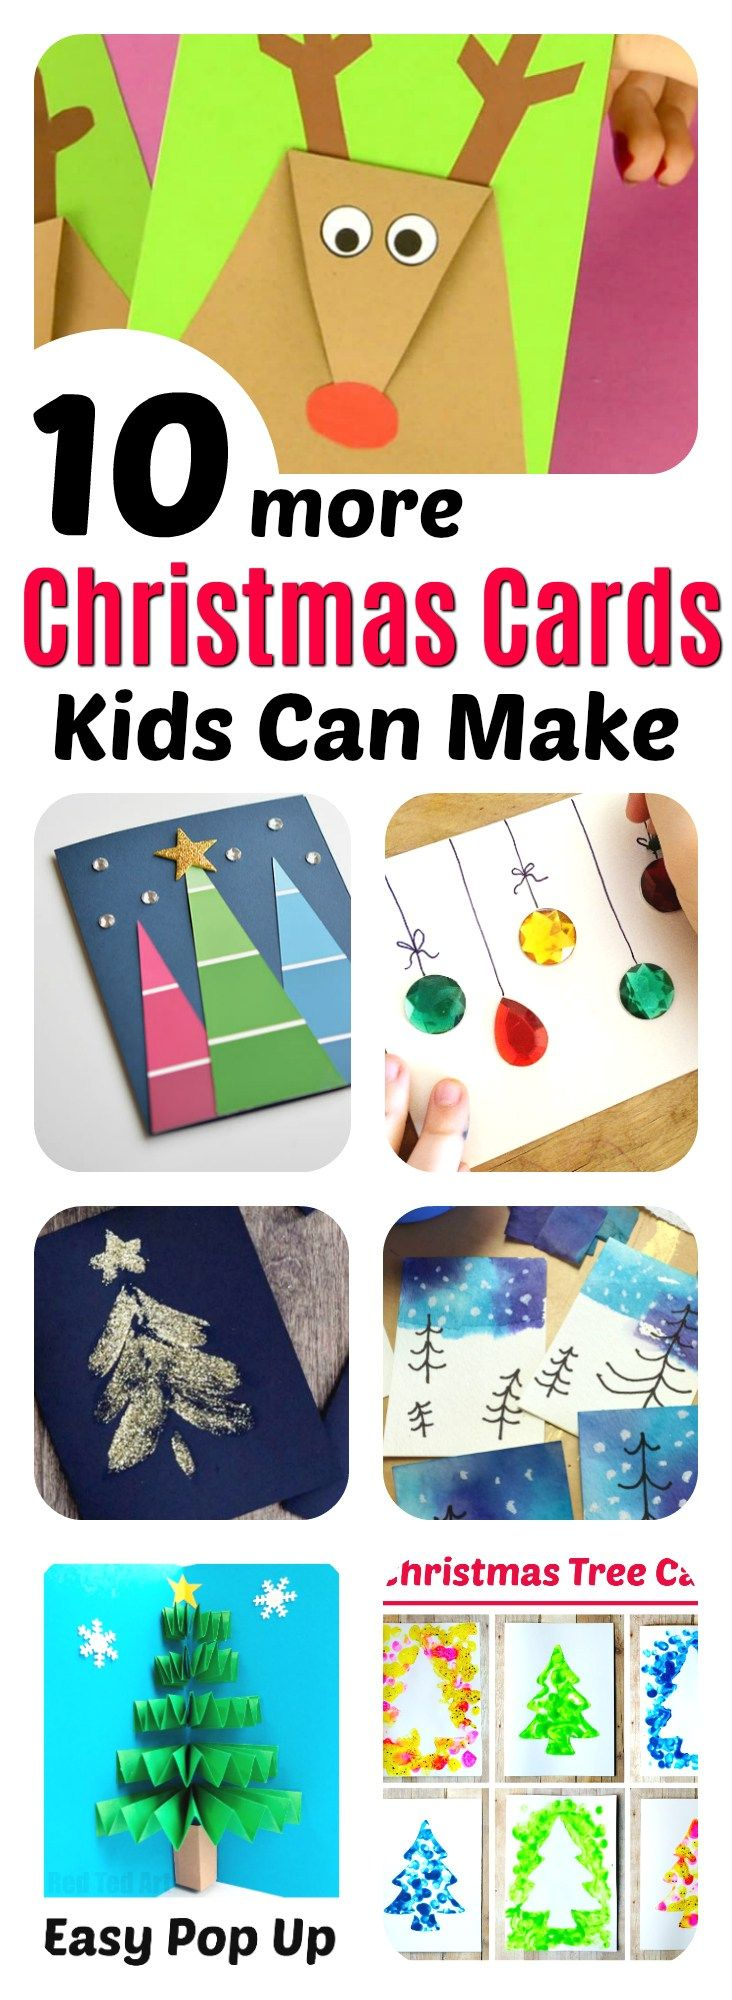 10 amazing Christmas cards kids can make for teachers, grandparents and friends! Super easy and very impressive looking! || Christmas Cards Kids Can Make: 10 More Inspiring Ideas! || Another fun Christmas post from Letters from Santa Holiday Blog